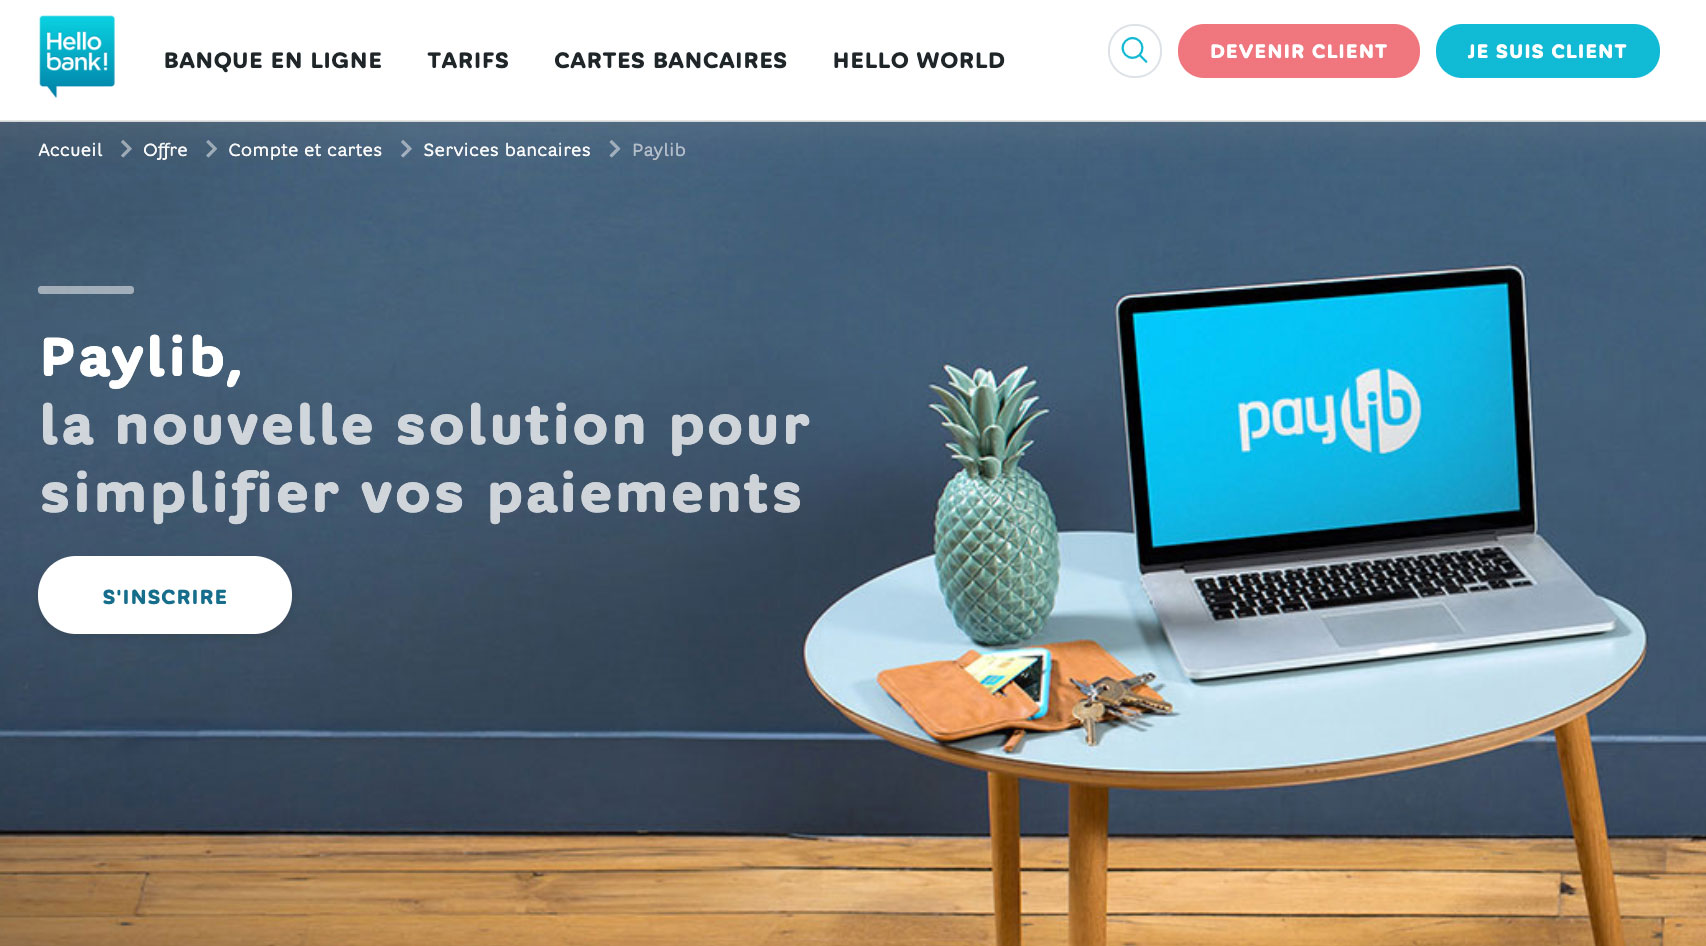 Paylib chez Hello bank!